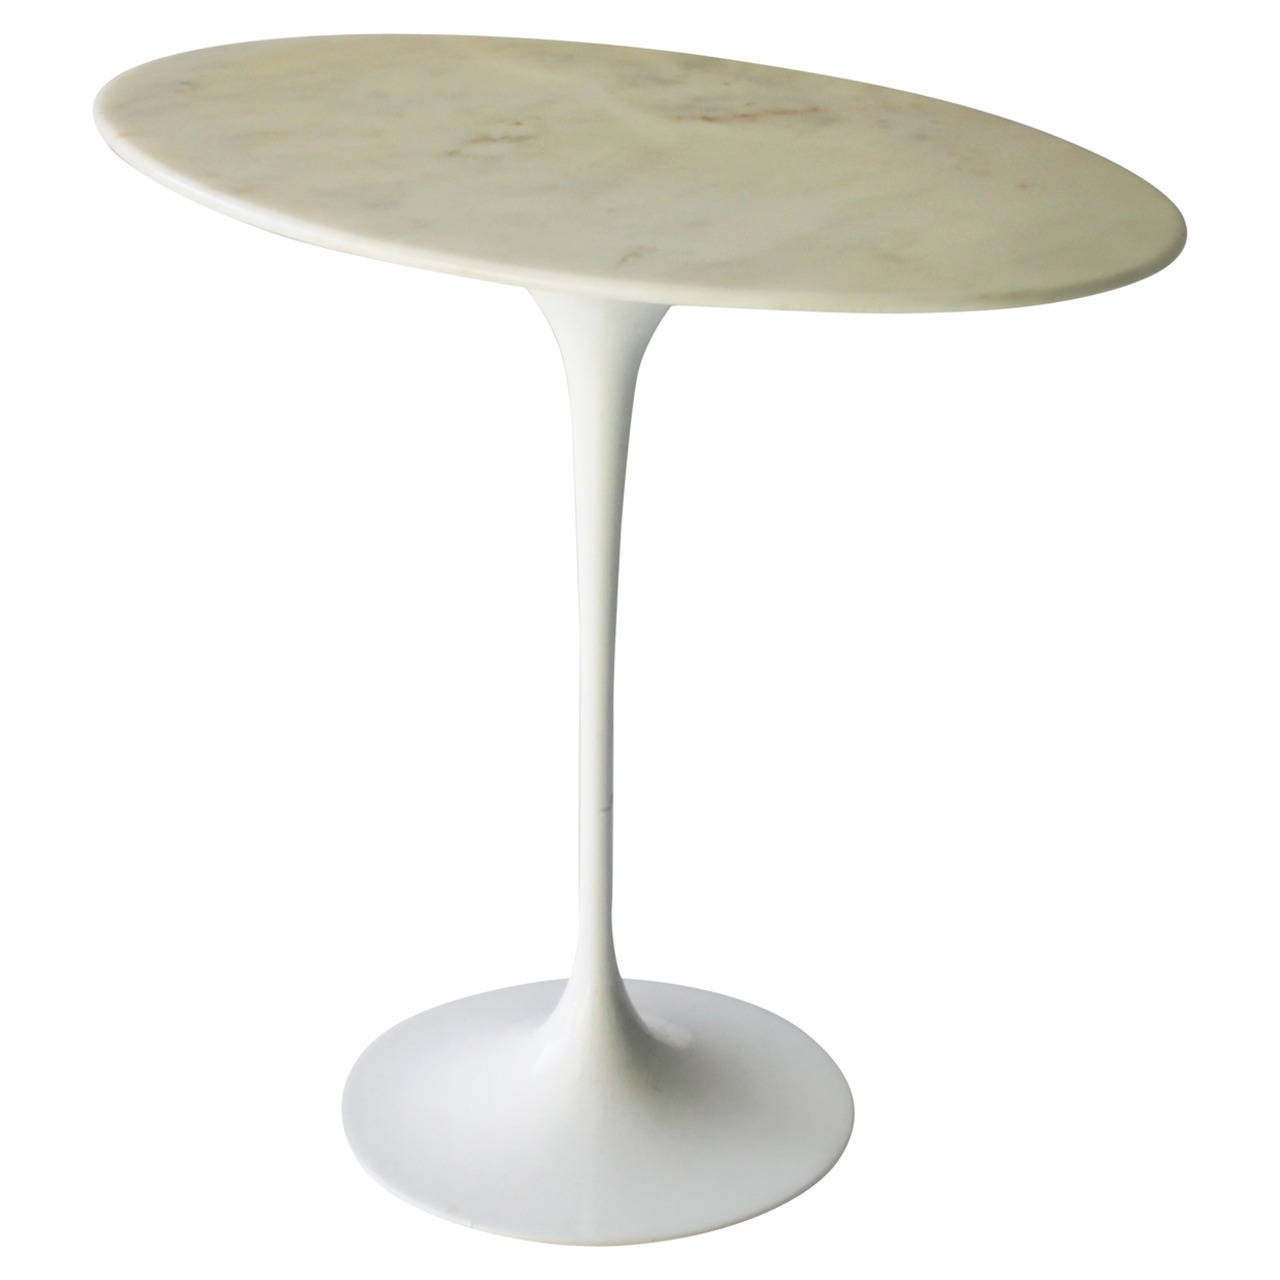 Saarinen Coffee Table Marble Marble Side Table by Saarinen